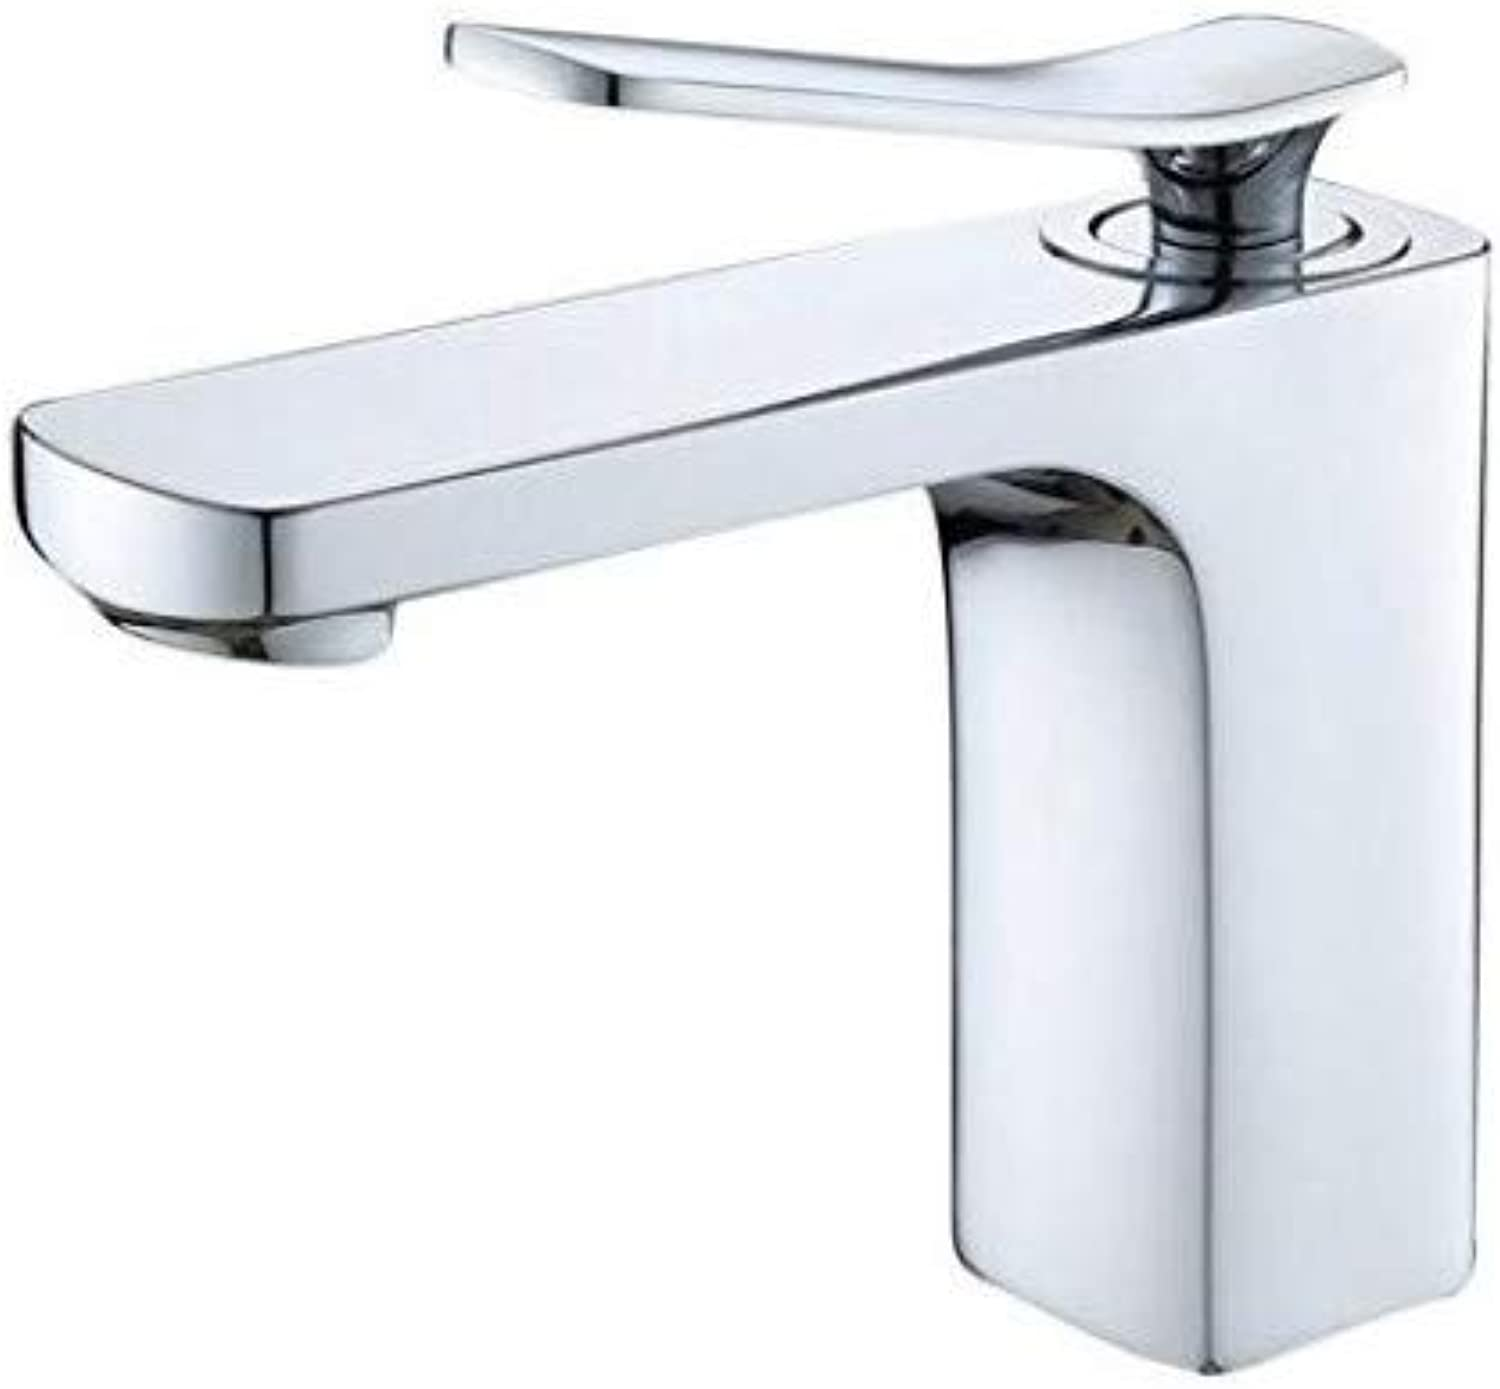 Taps Kitchen Sink Faucet All Copper Chrome Plated Faucet Basin, Hot and Cold Water Faucet